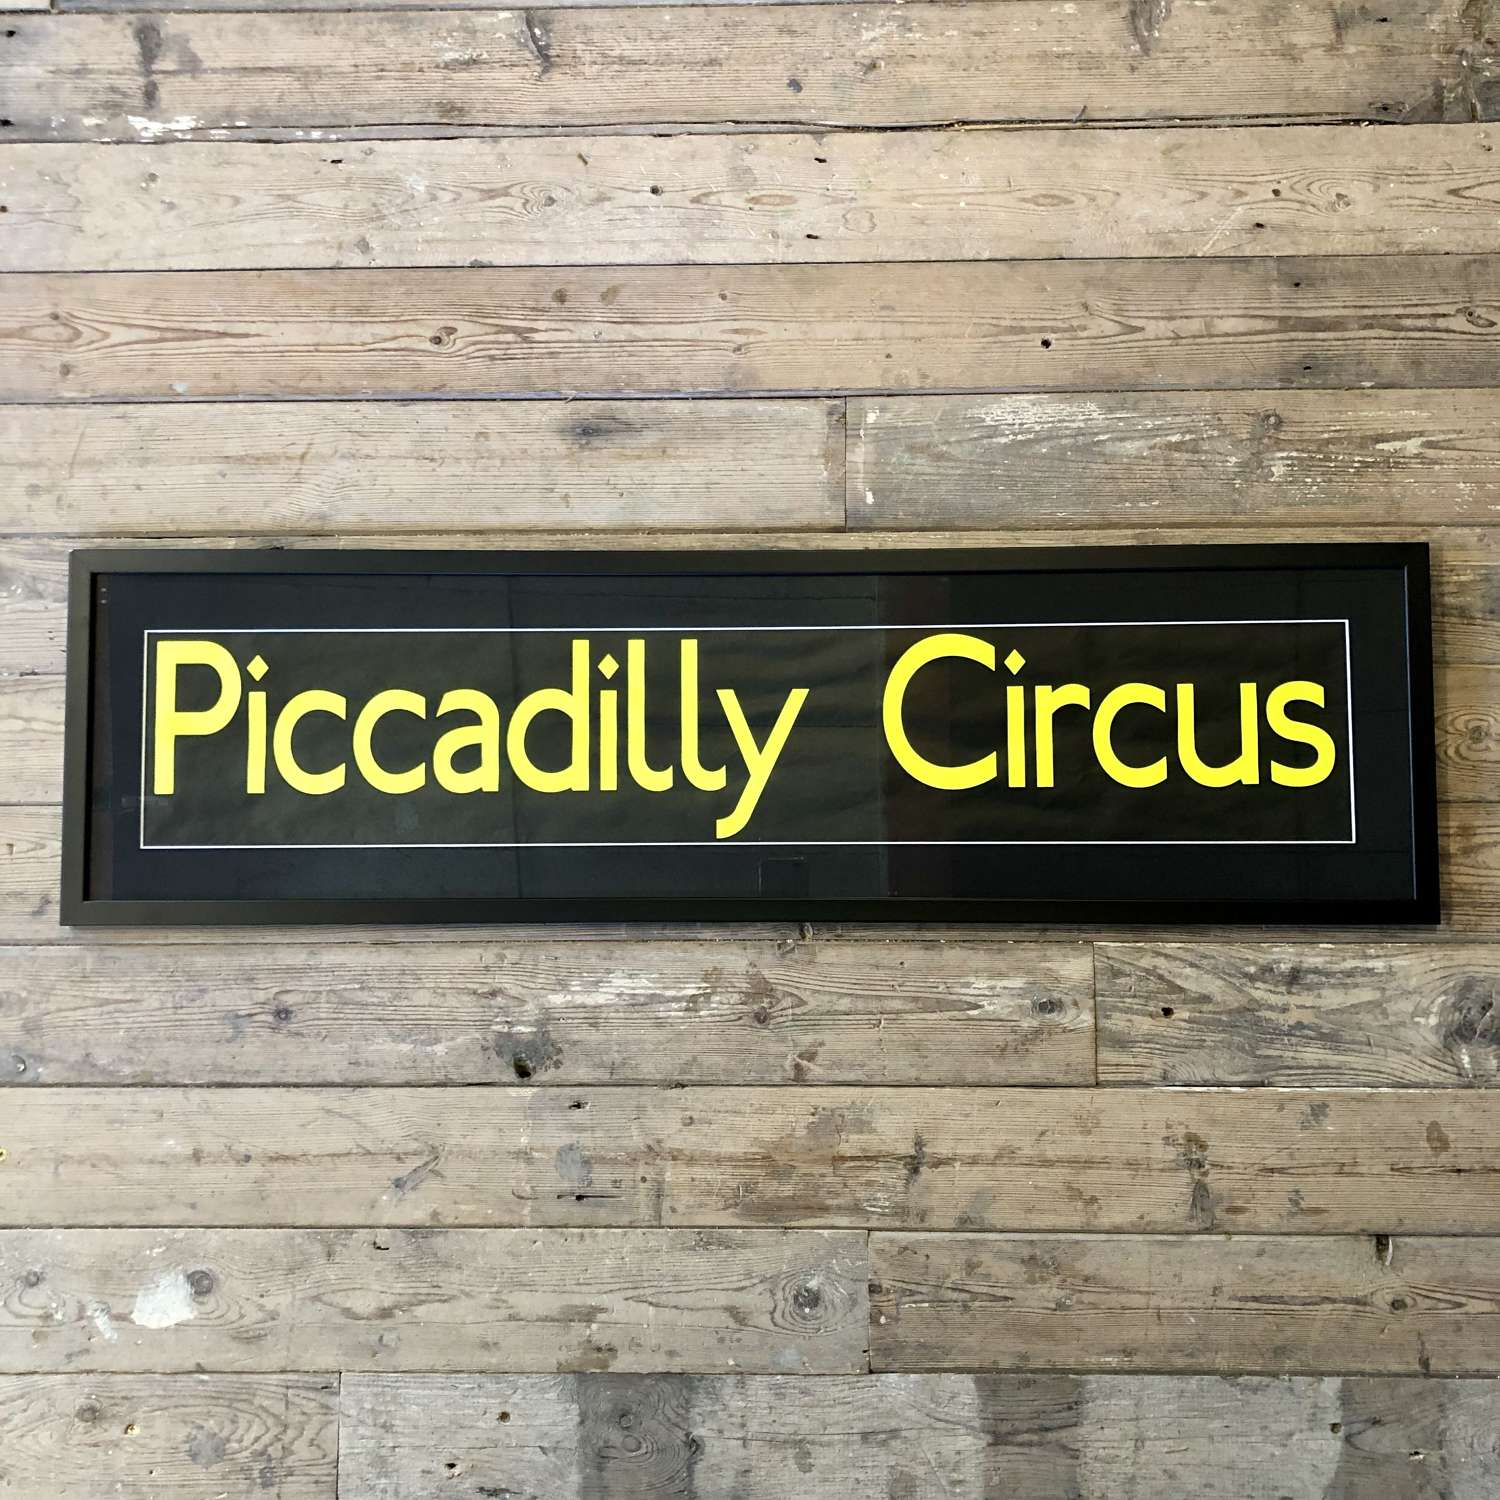 Vintage bus blind 'Piccadilly Circus' Framed